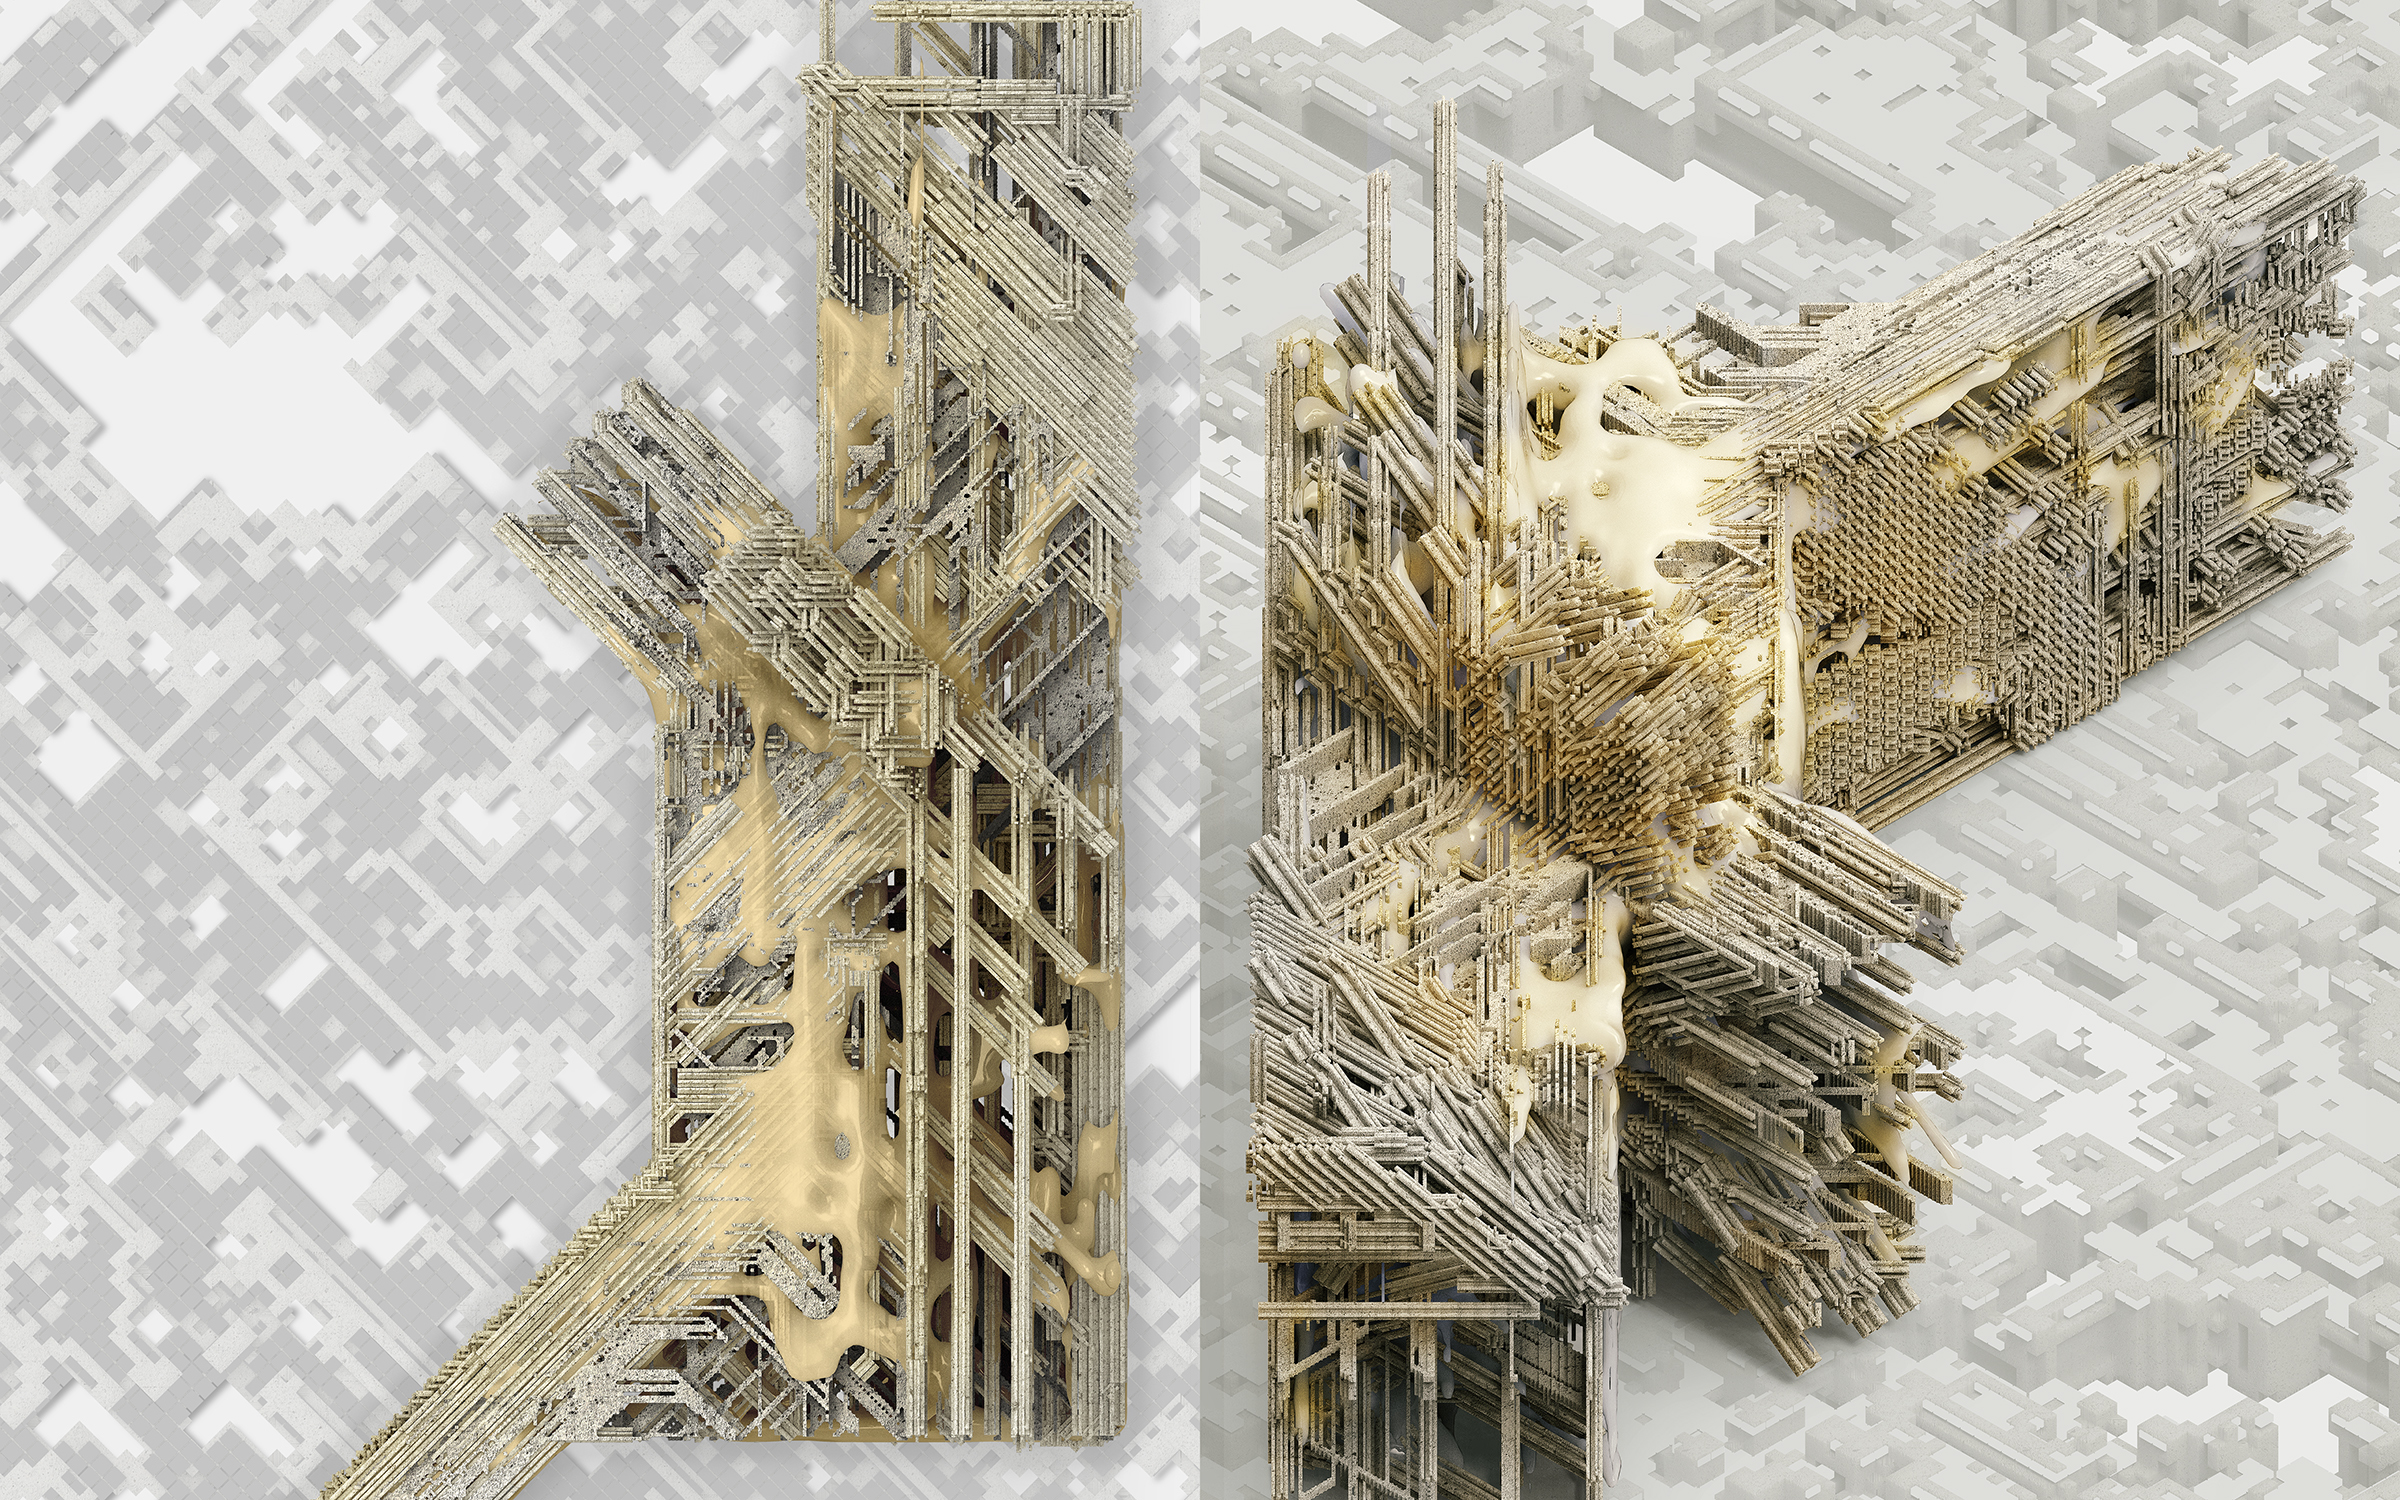 Plan and axon renders of a scripted architetcural 3D Model